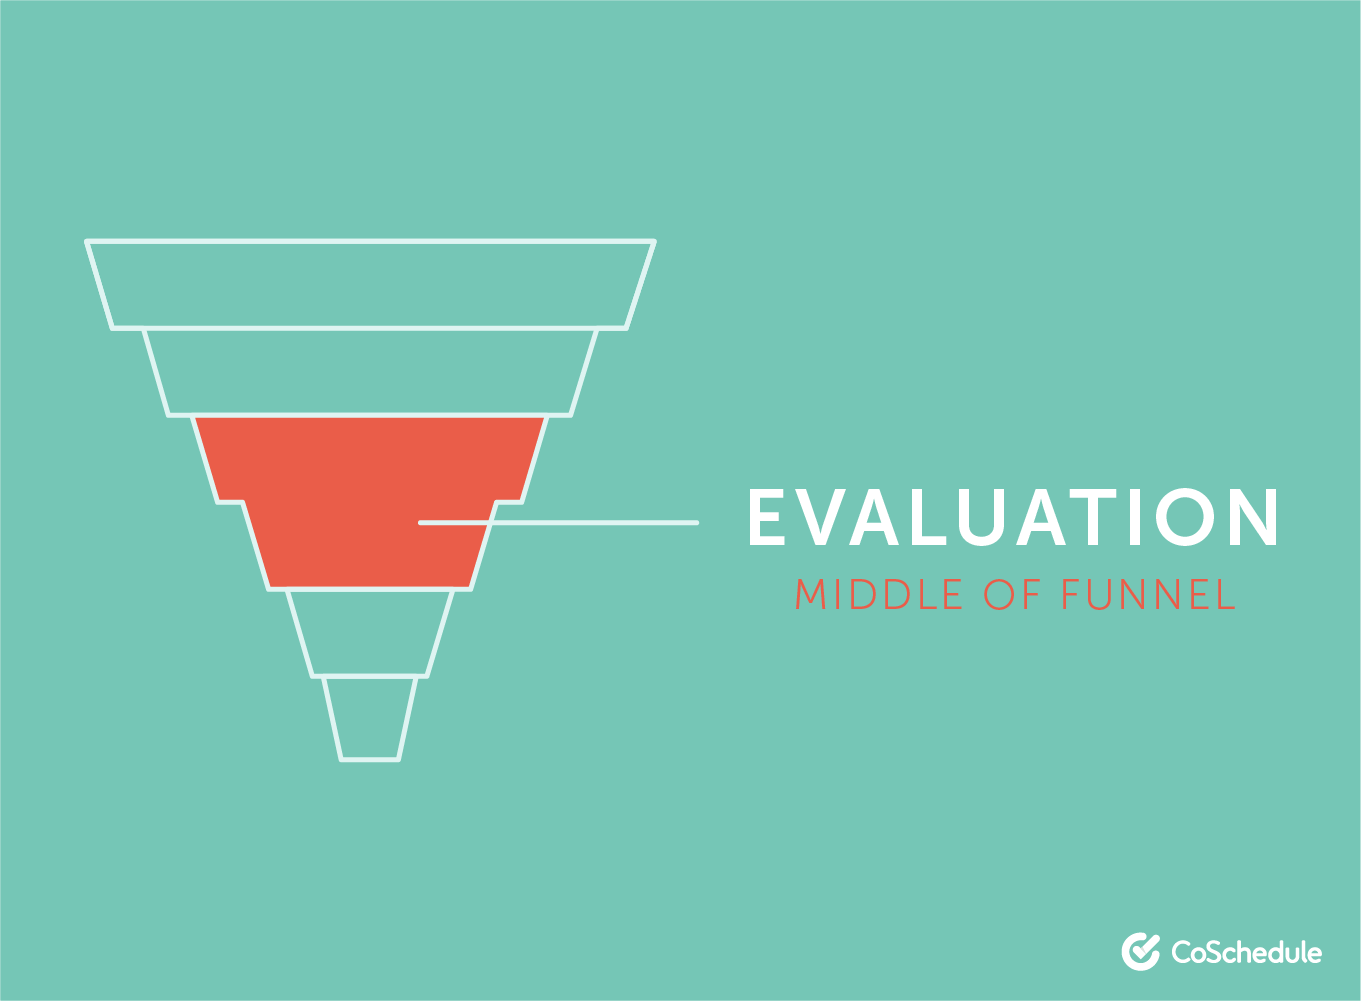 Evaluation stage of the marketing funnel